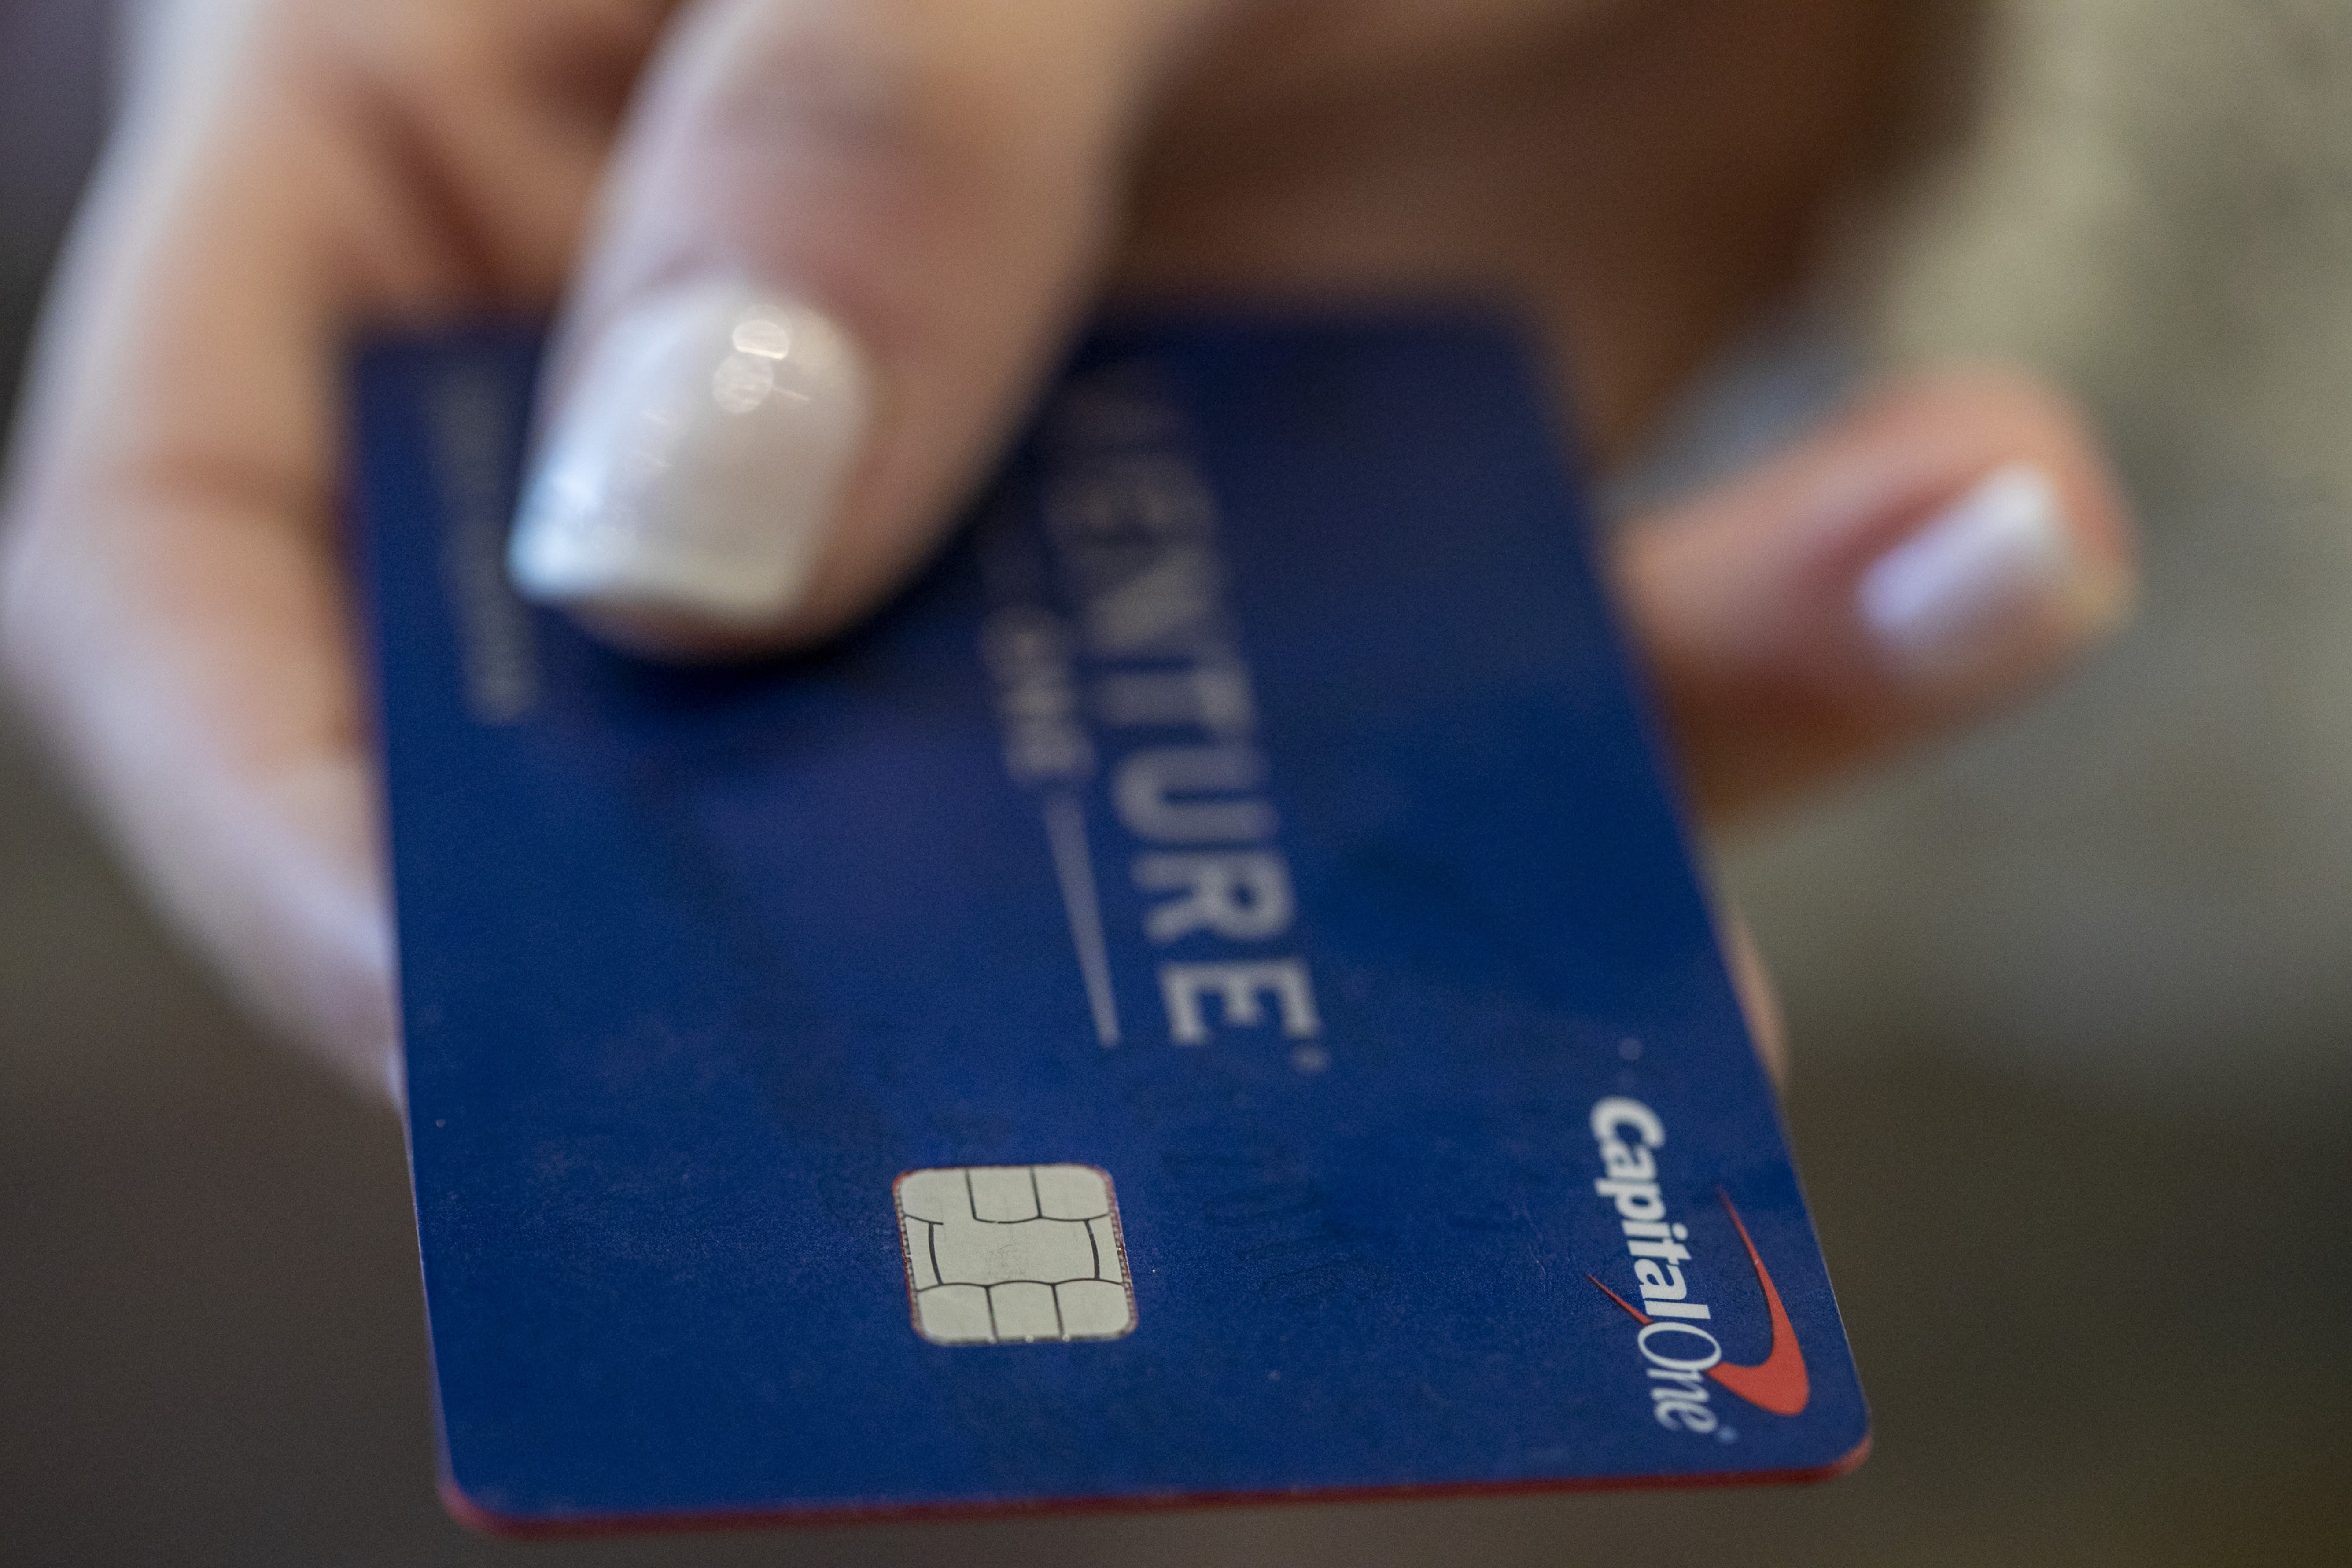 Capital One suspect may have hacked 30+ organizations